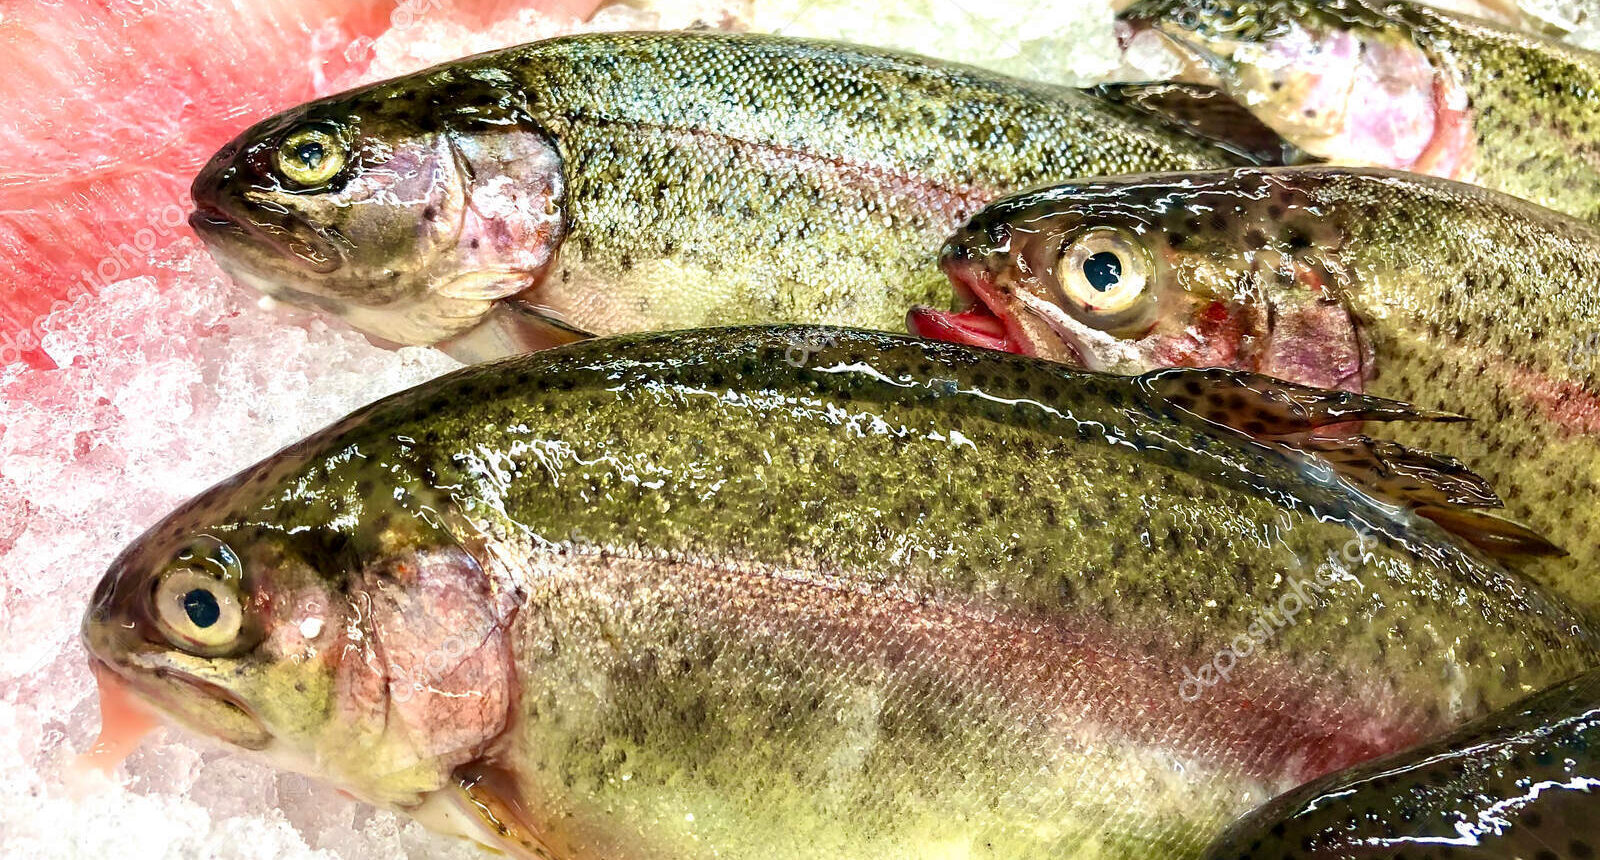 how to clean rainbow trout 2021, how to clean and cook rainbow trout, how to filet rainbow trout, how to kill rainbow trout, how to gut rainbow trout